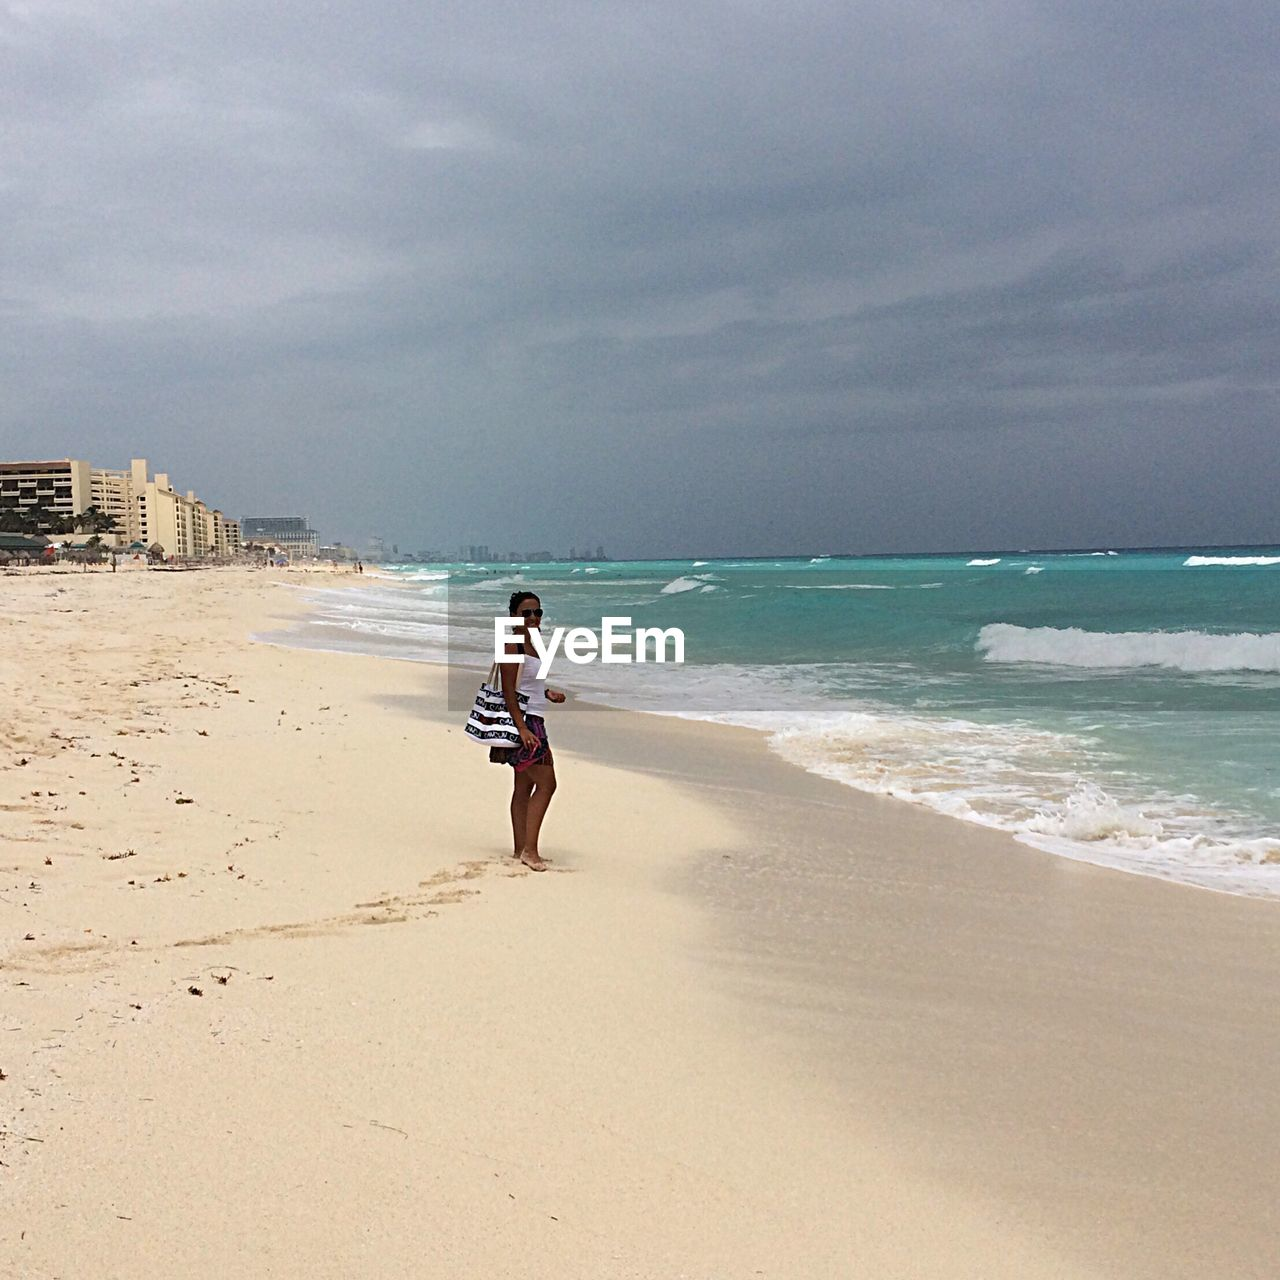 beach, sea, sand, shore, one person, full length, nature, real people, water, horizon over water, sky, scenics, beauty in nature, rear view, walking, lifestyles, leisure activity, day, outdoors, standing, vacations, wave, motion, tranquility, ankle deep in water, young adult, women, young women, people